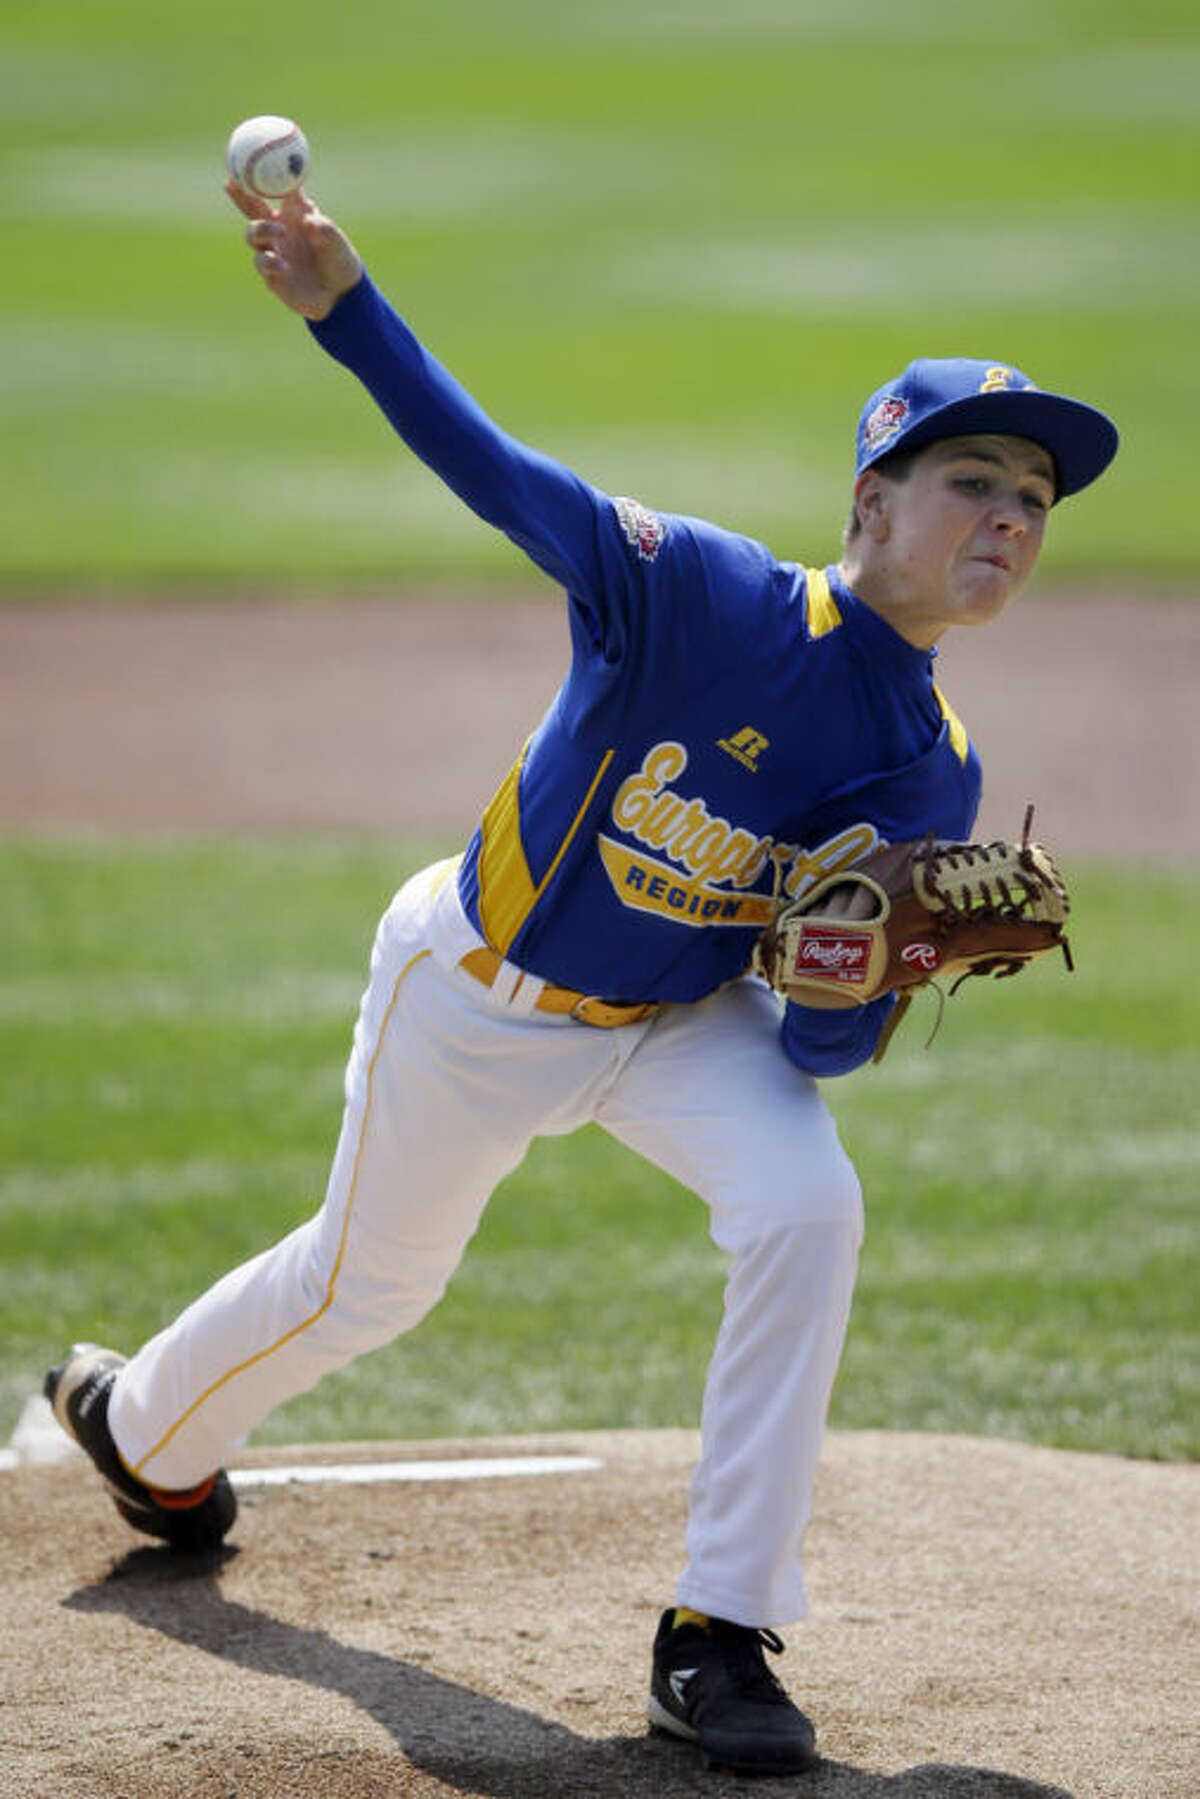 Brno, Czech Republic's Robin Varva pitches during the first inning of a consolation baseball game against Grosse Pointe, Mich. at the Little League World Series tournament, Tuesday, Aug. 20, 2013, in South Williamsport, Pa. (AP Photo/Matt Slocum)